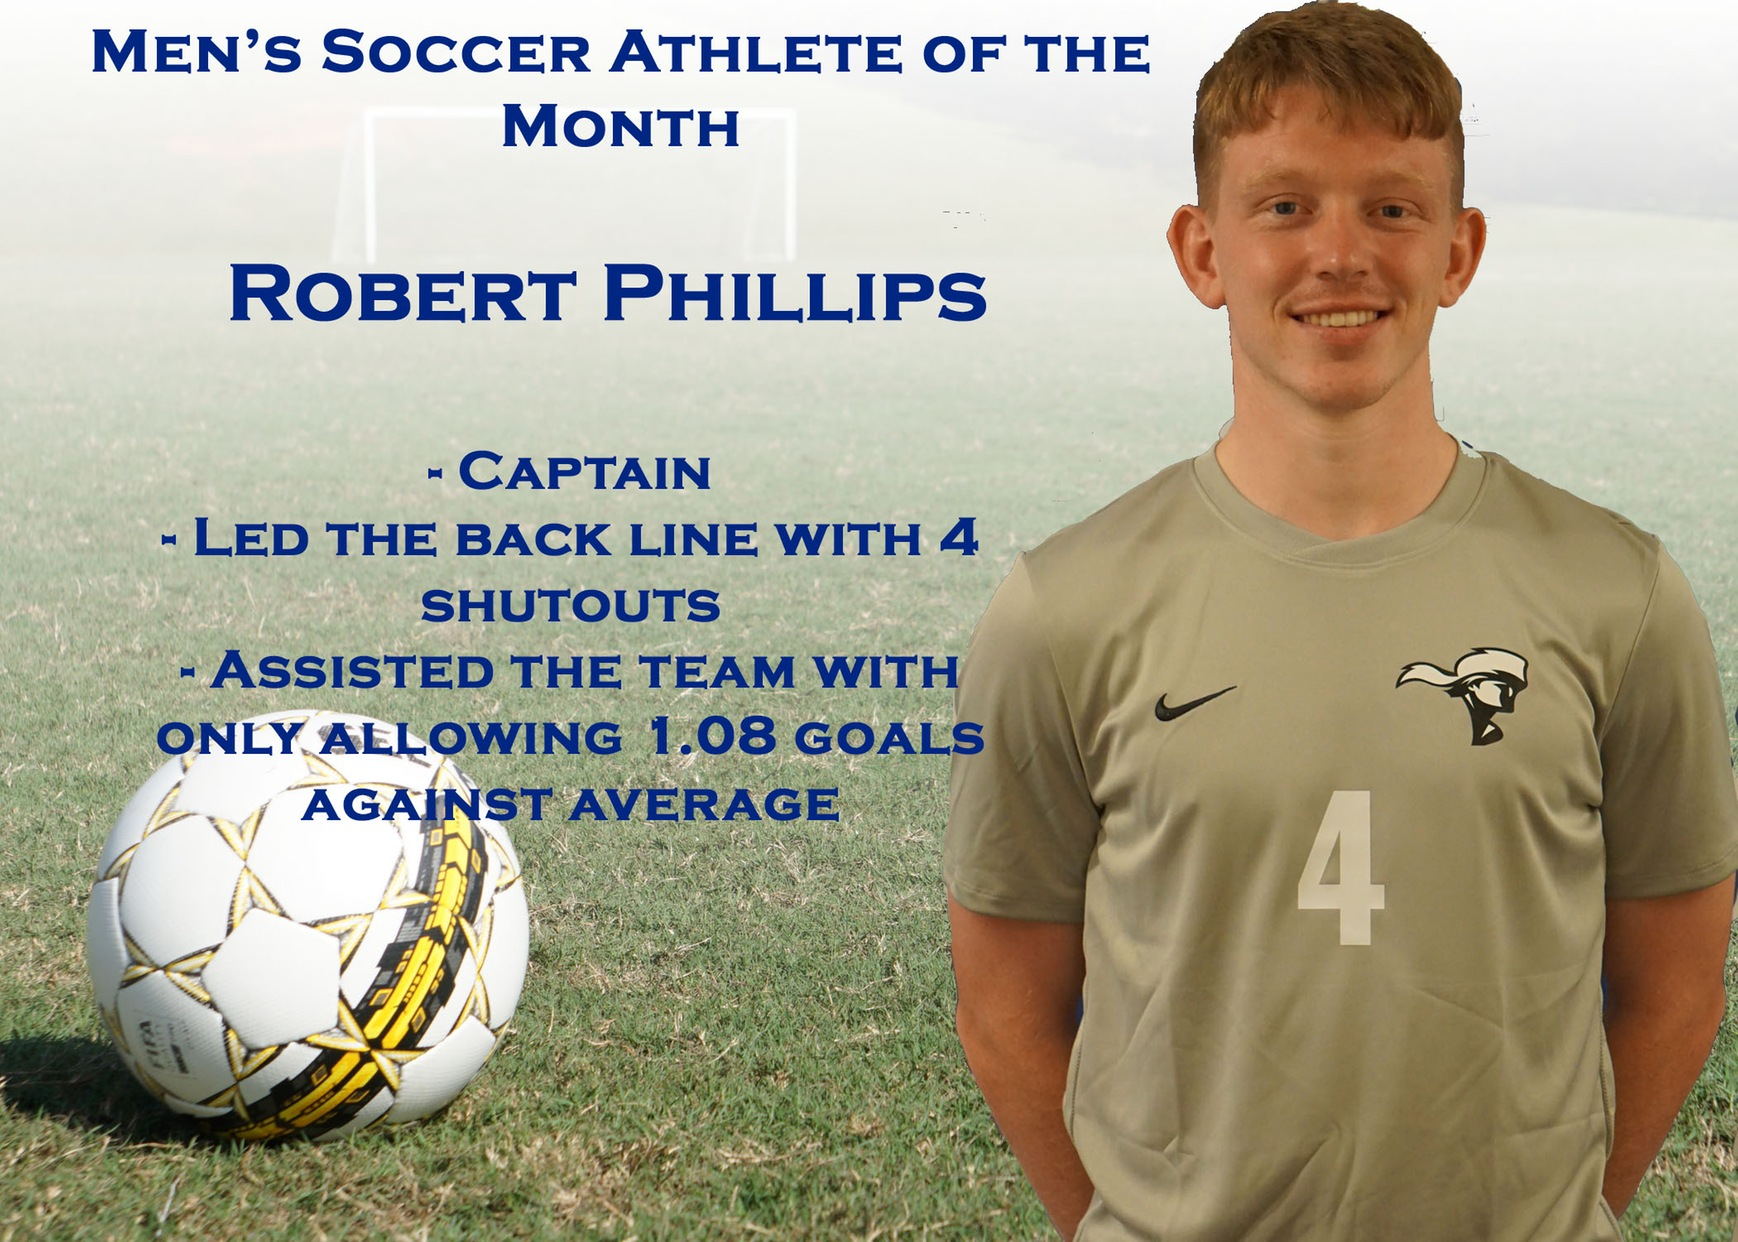 Men's Soccer Athlete of the Month